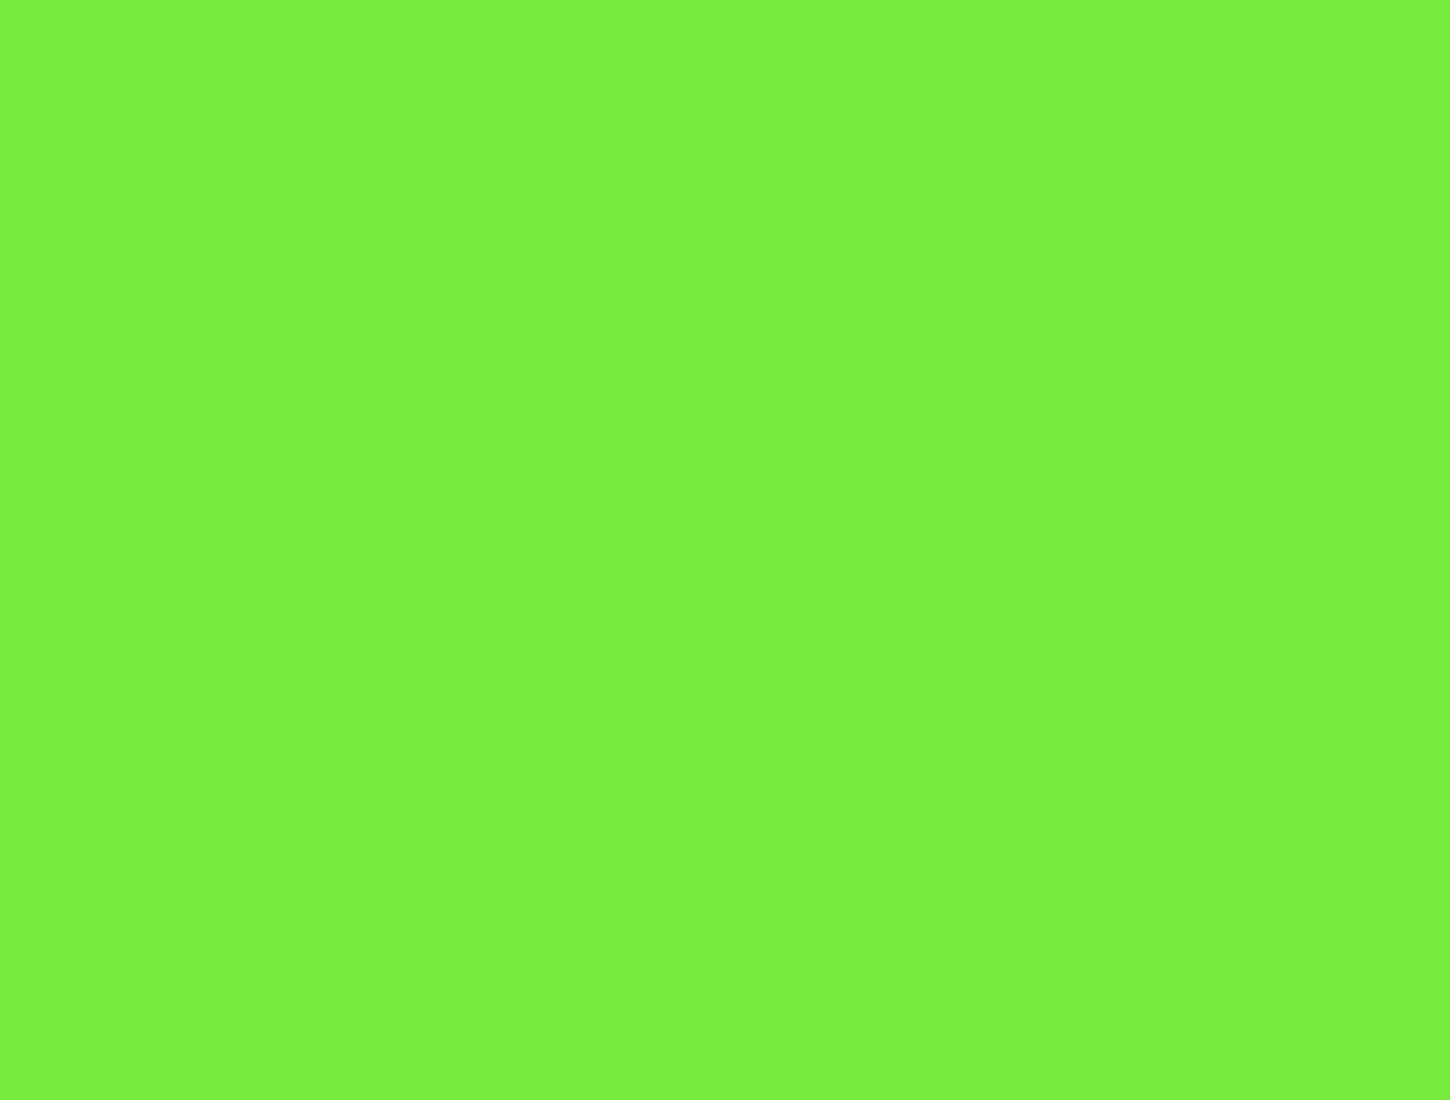 Lime Green Wallpapers